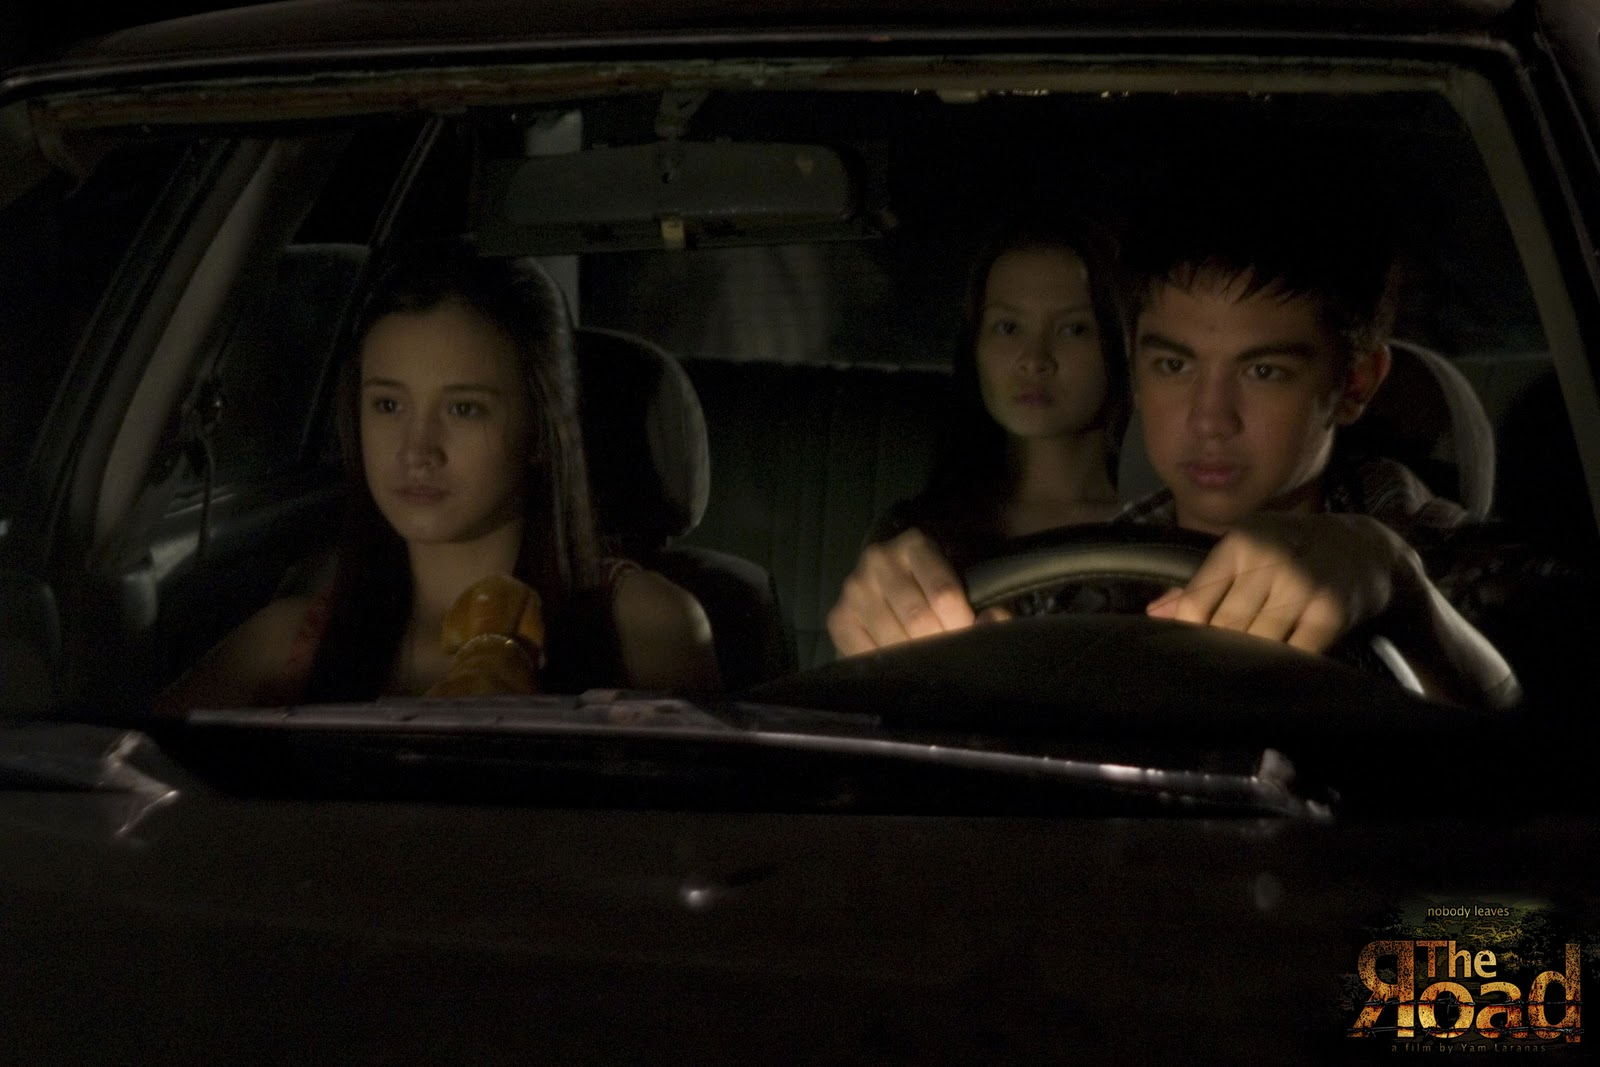 Lexi Fernandez, Barbie Forteza and Derrick Montaserio drive down  in The Road (2011)